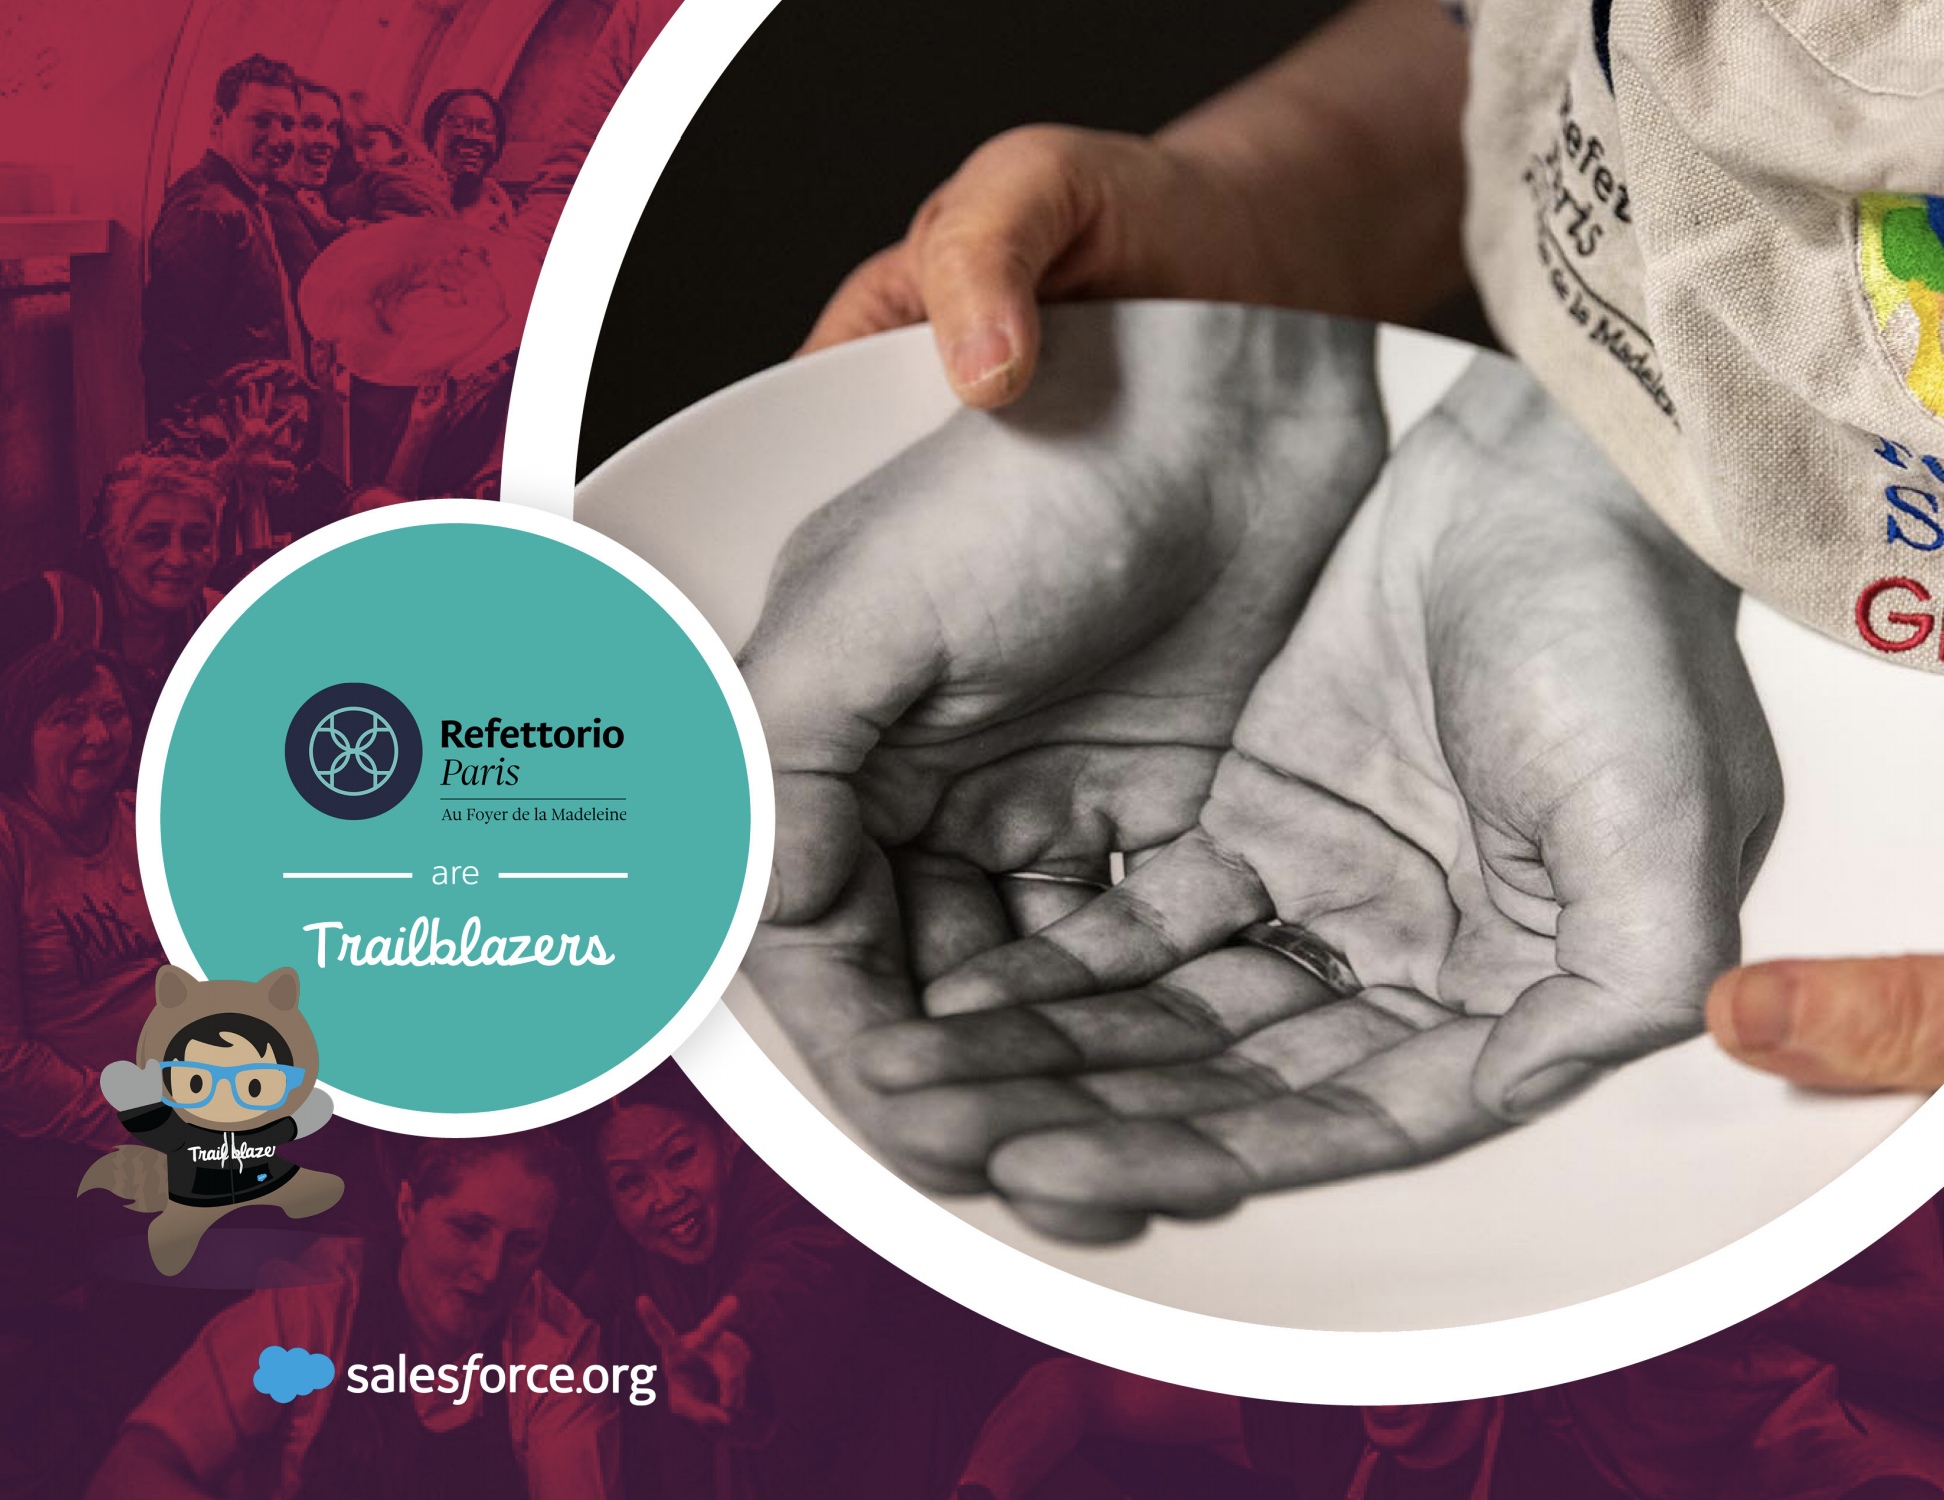 Refettorio are Trailblazers